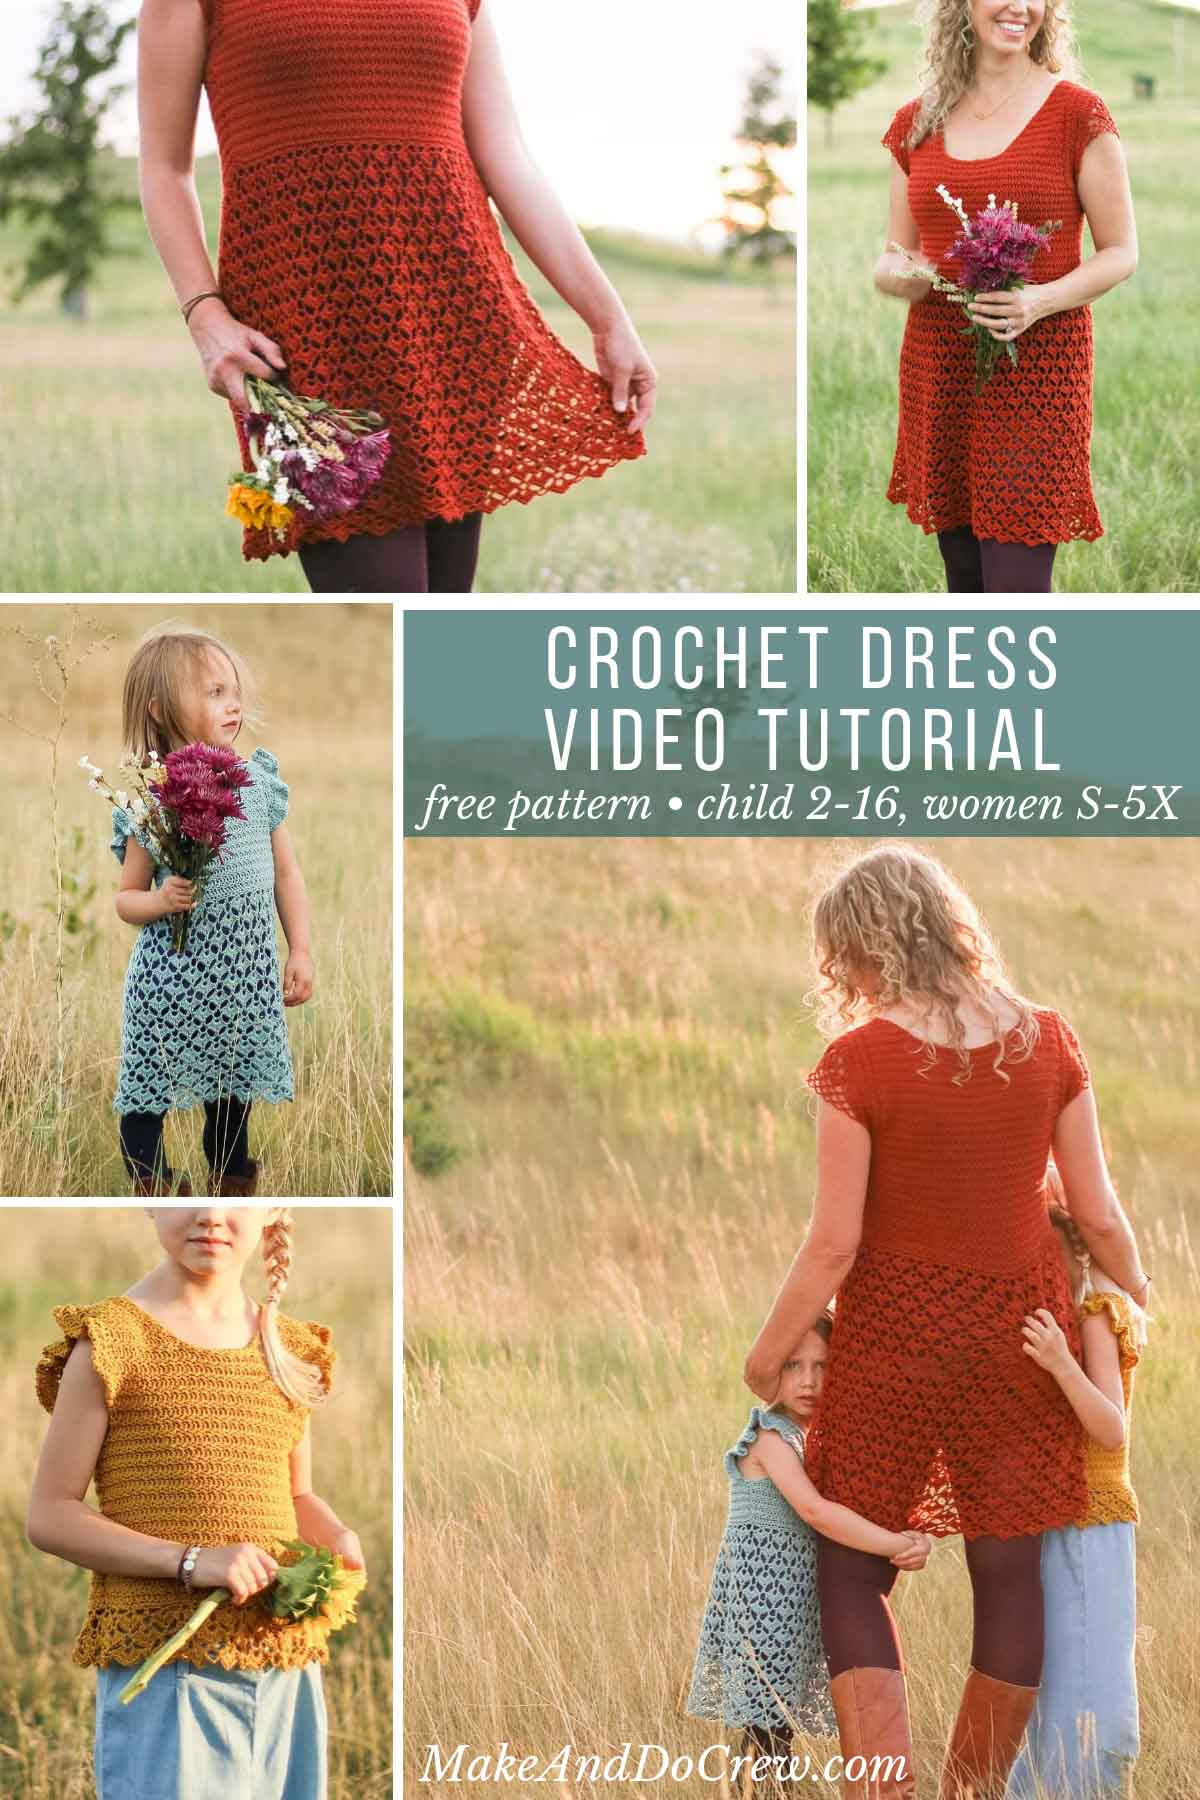 This free crochet dress pattern for ladies and children is easy to customize. Follow the video tutorial for step-by-step visual instructions.